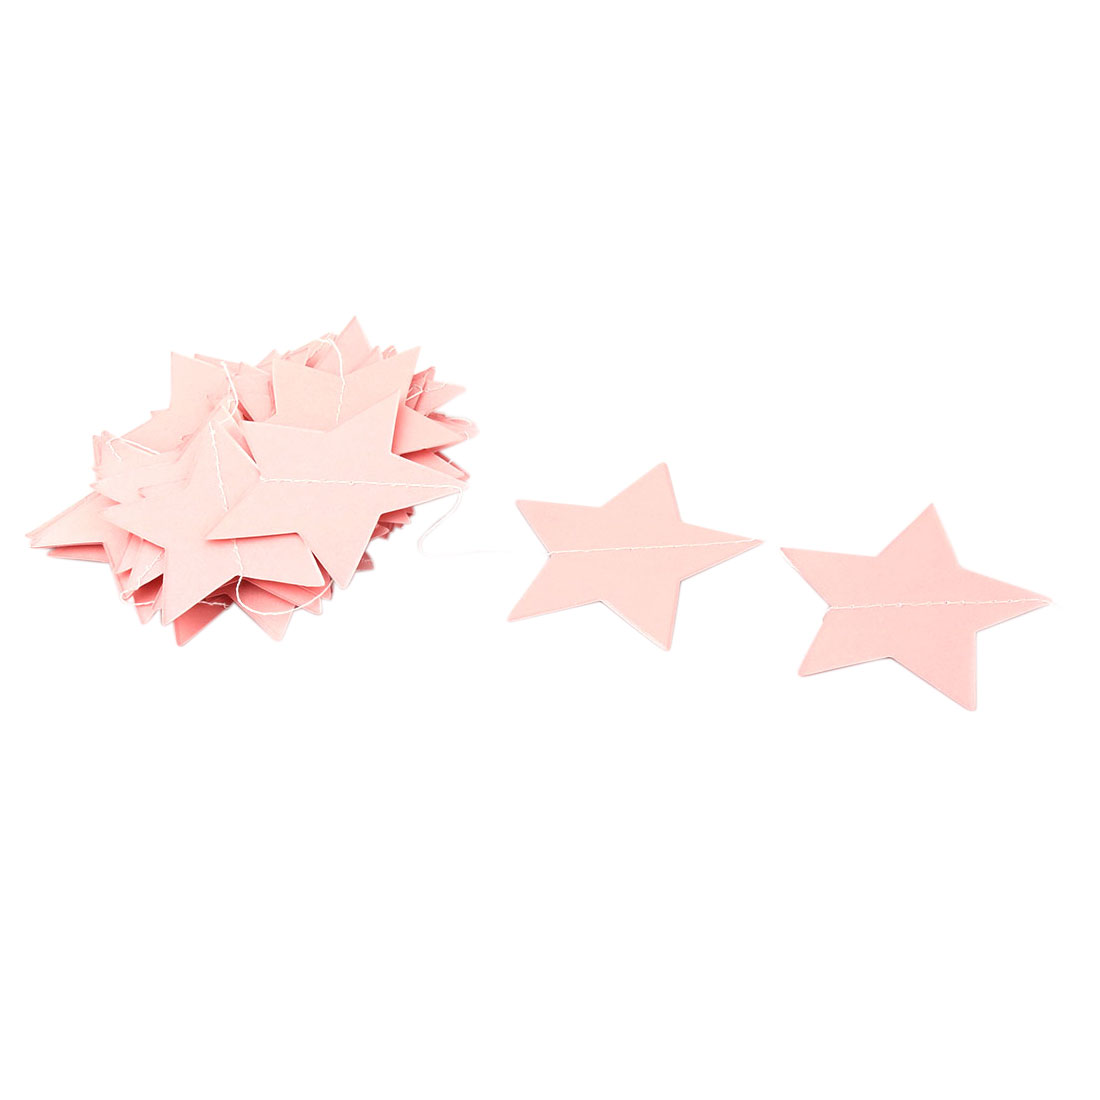 Party Decor Paper Star Shape DIY Hanging Ornament Photo Prop Bunting Banner Pink